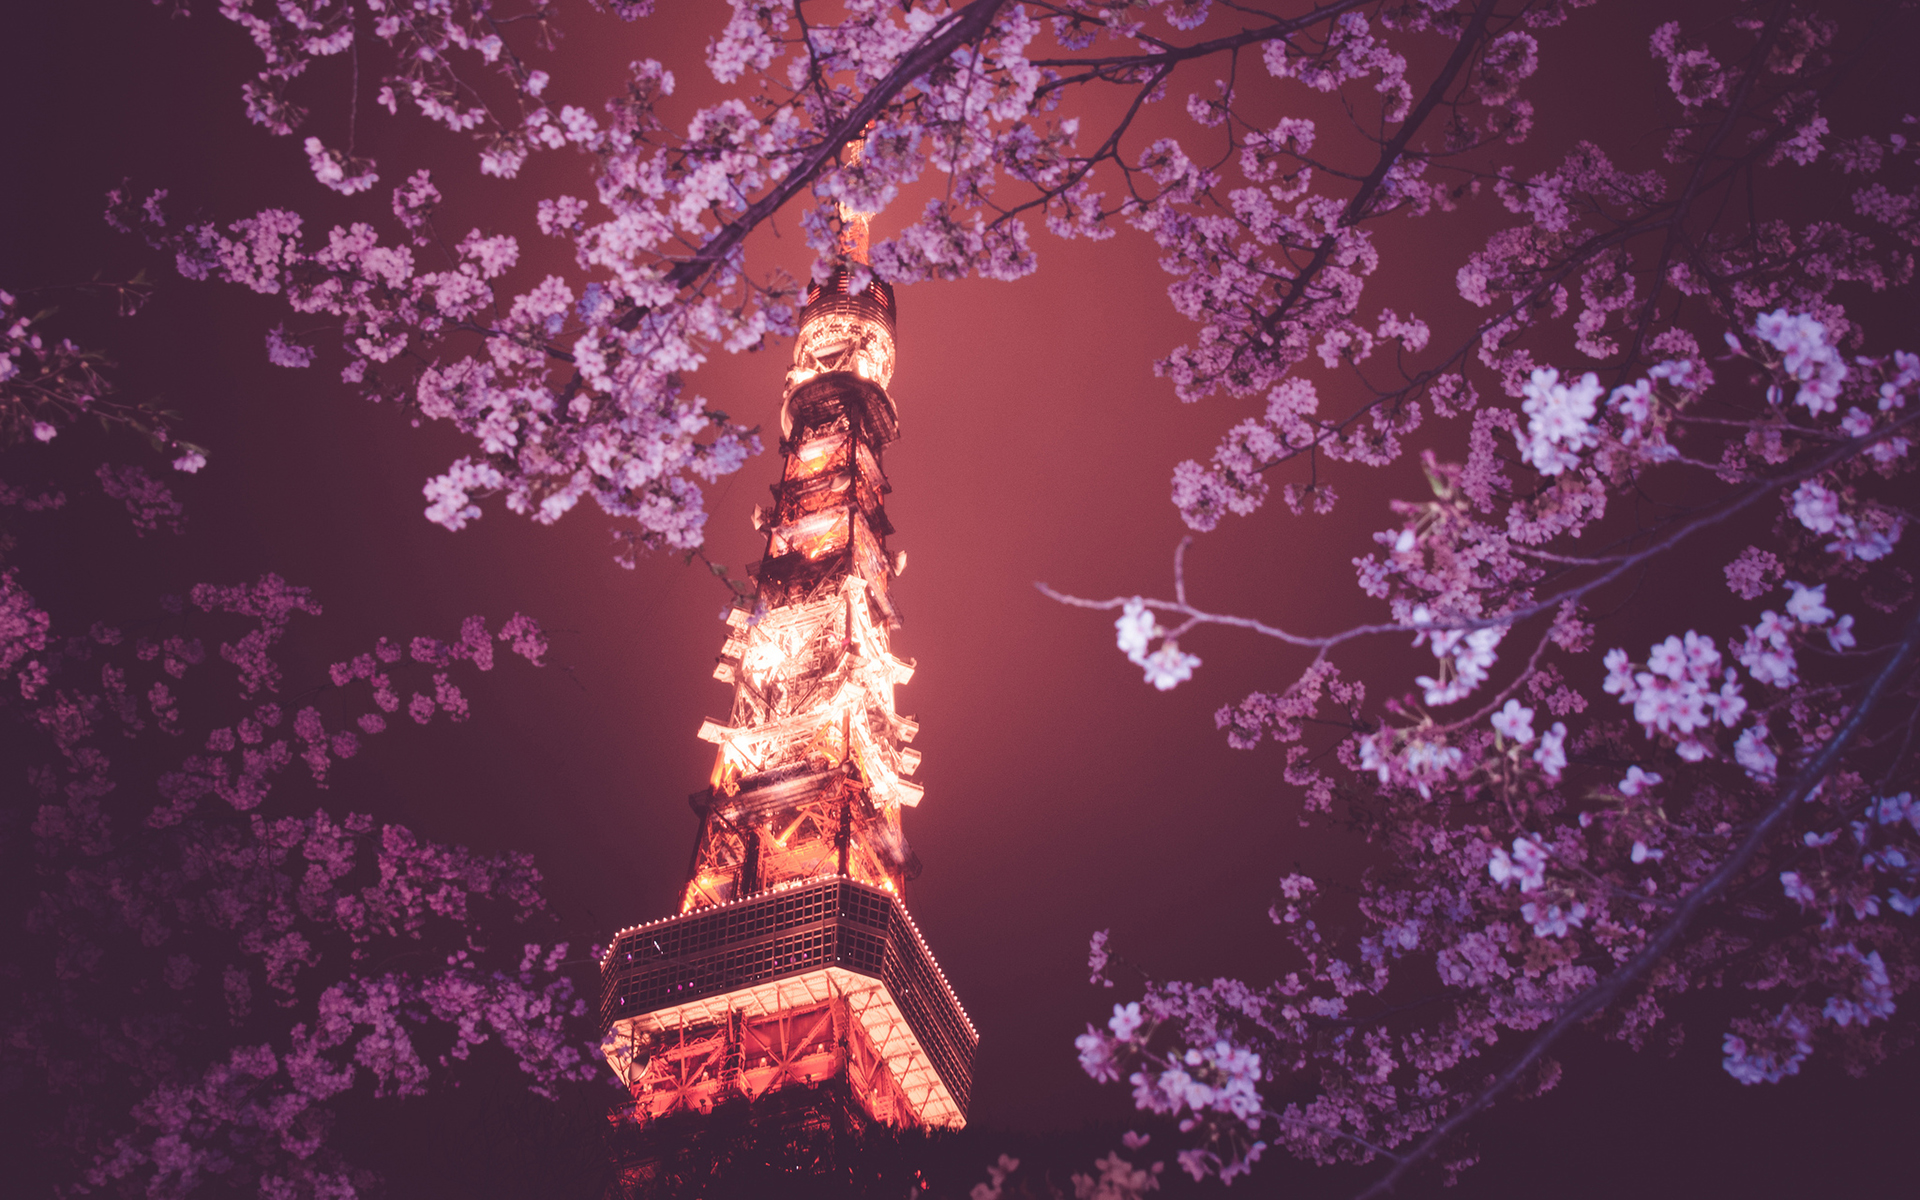 hd cherry blossom backgrounds - photo #41